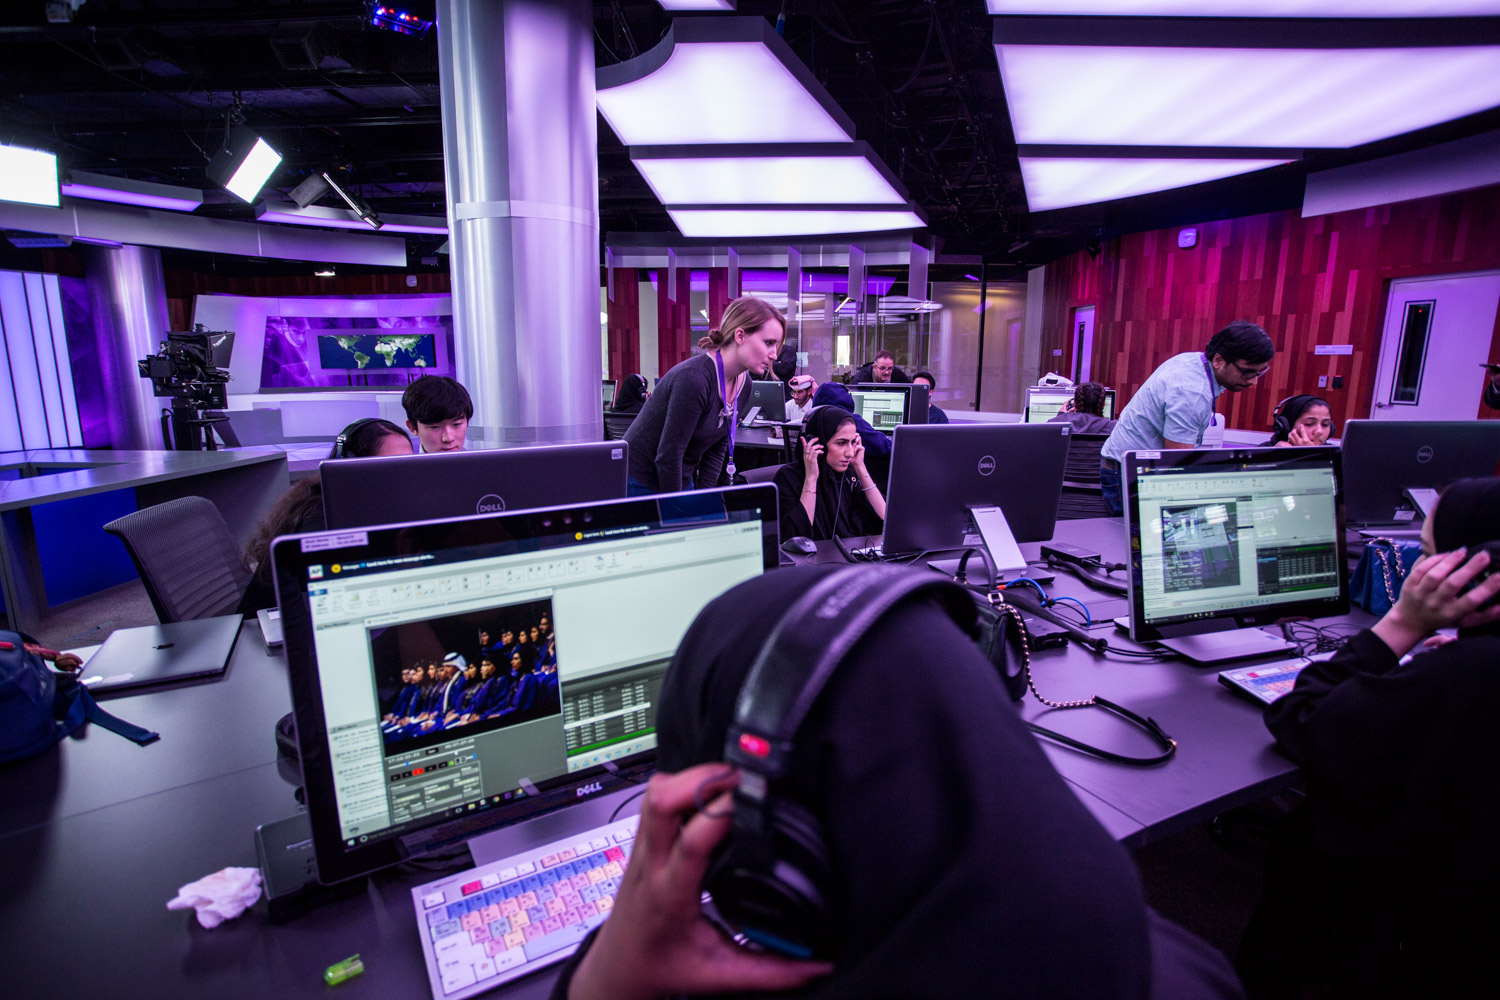 Designed by Beirut architect Ali Wazani, the space allows students to work in all components of news production. Using a feed from live newswires, students are able to gather information and transform it into stories, graphics, and other digital visualization elements. The automated newsroom, which is the first of its kind in Qatar, and unique in the region, enables one person to run the entire show.